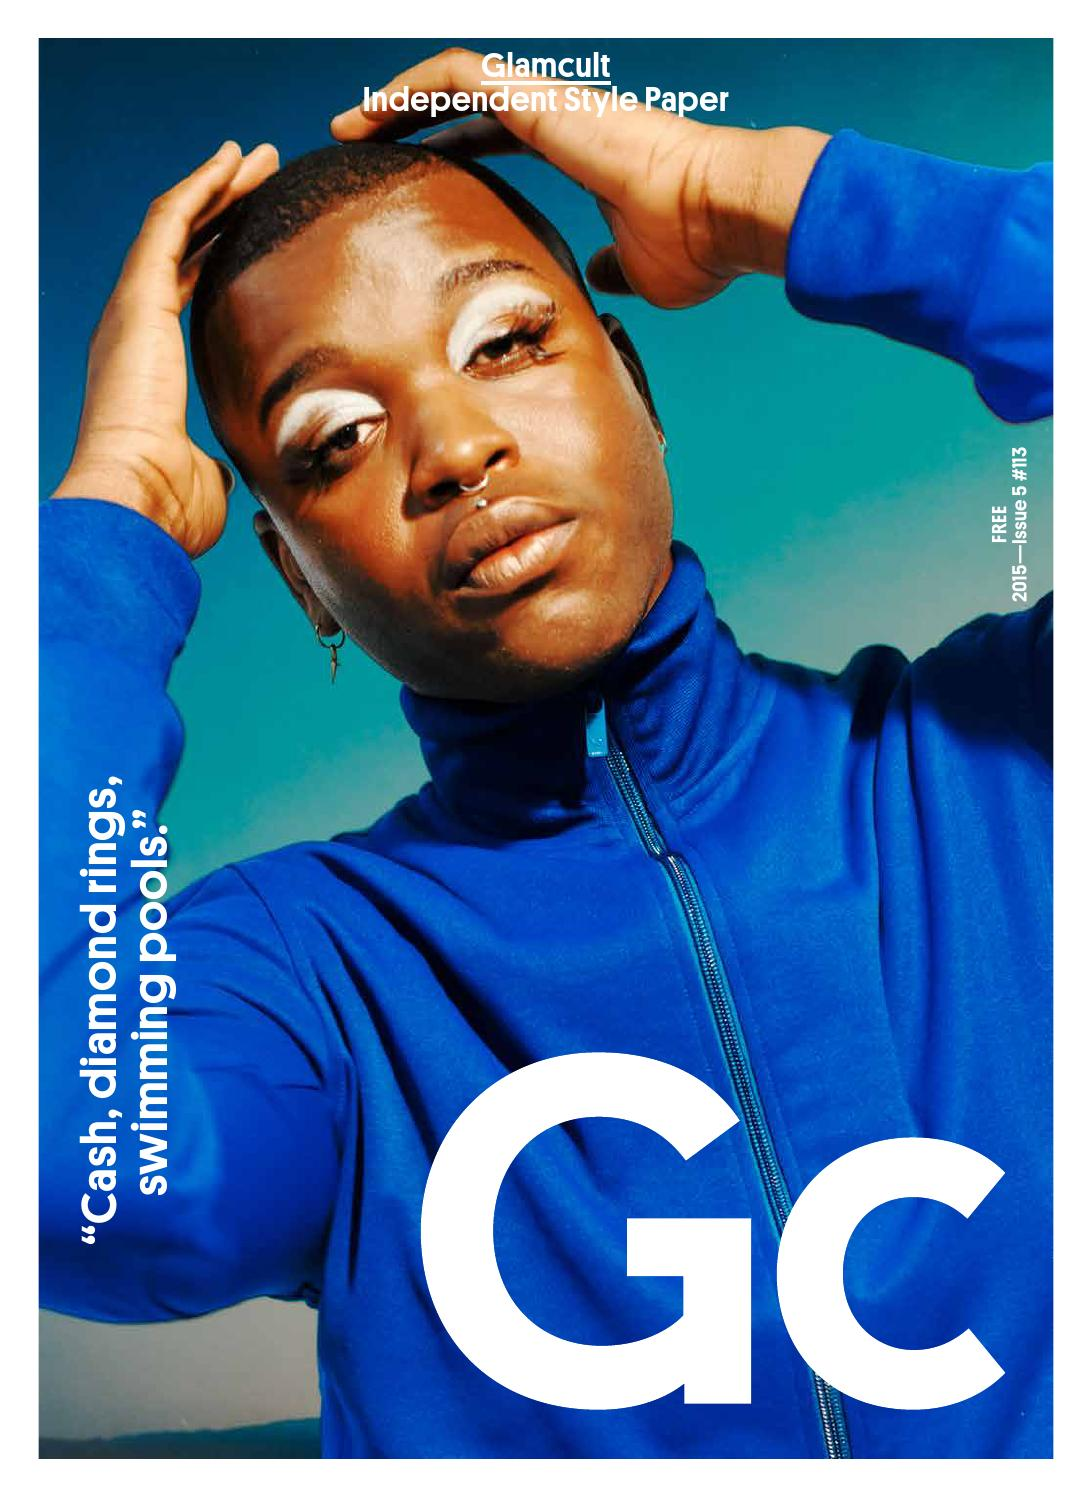 Glamcult 2015 Issue 5 113 Eu By Glamcult Issuu